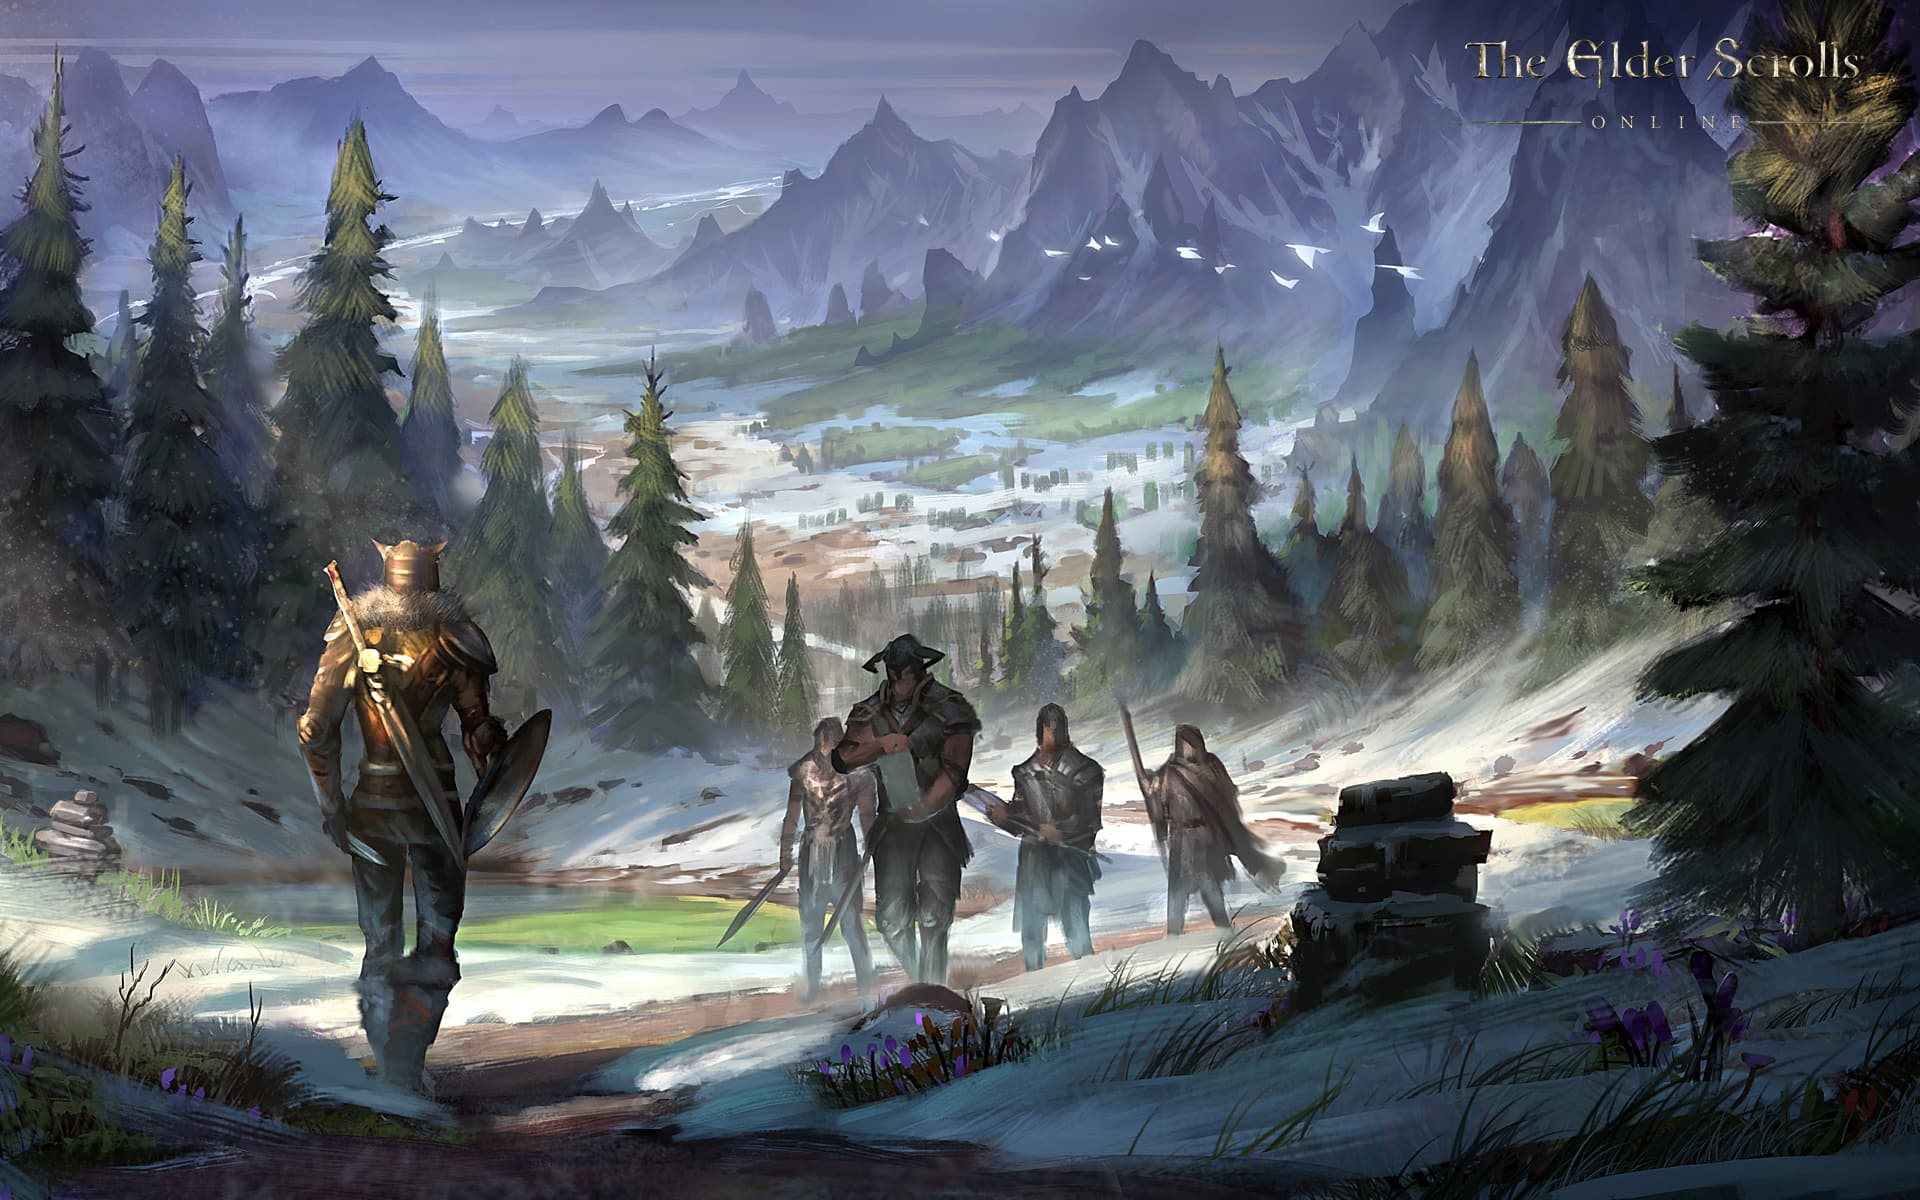 Wallpapers The Elder Scrolls Online